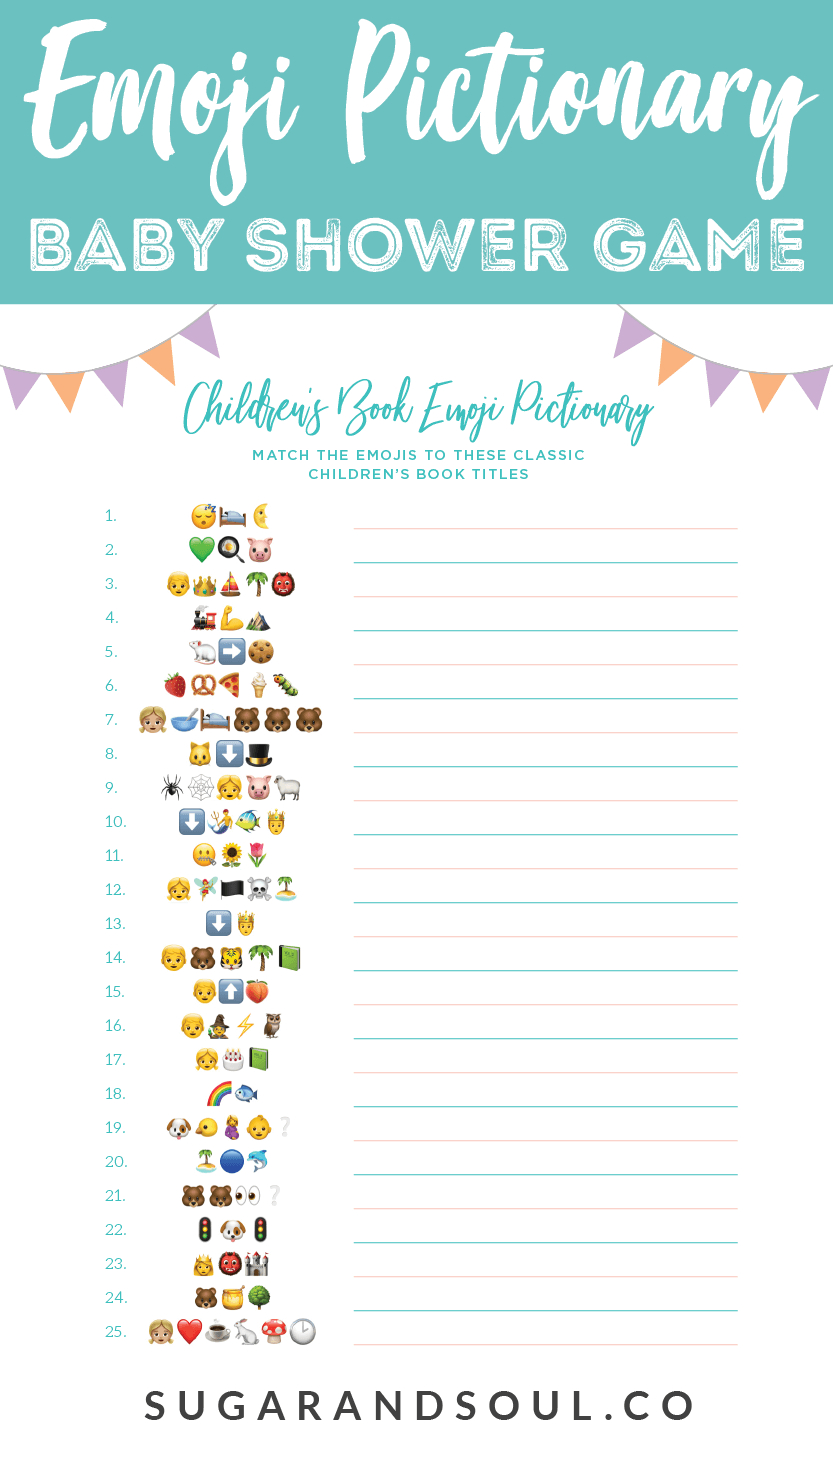 This Free Emoji Pictionary Baby Shower Game Printable Uses Emoji - Free Printable Baby Shower Games With Answers